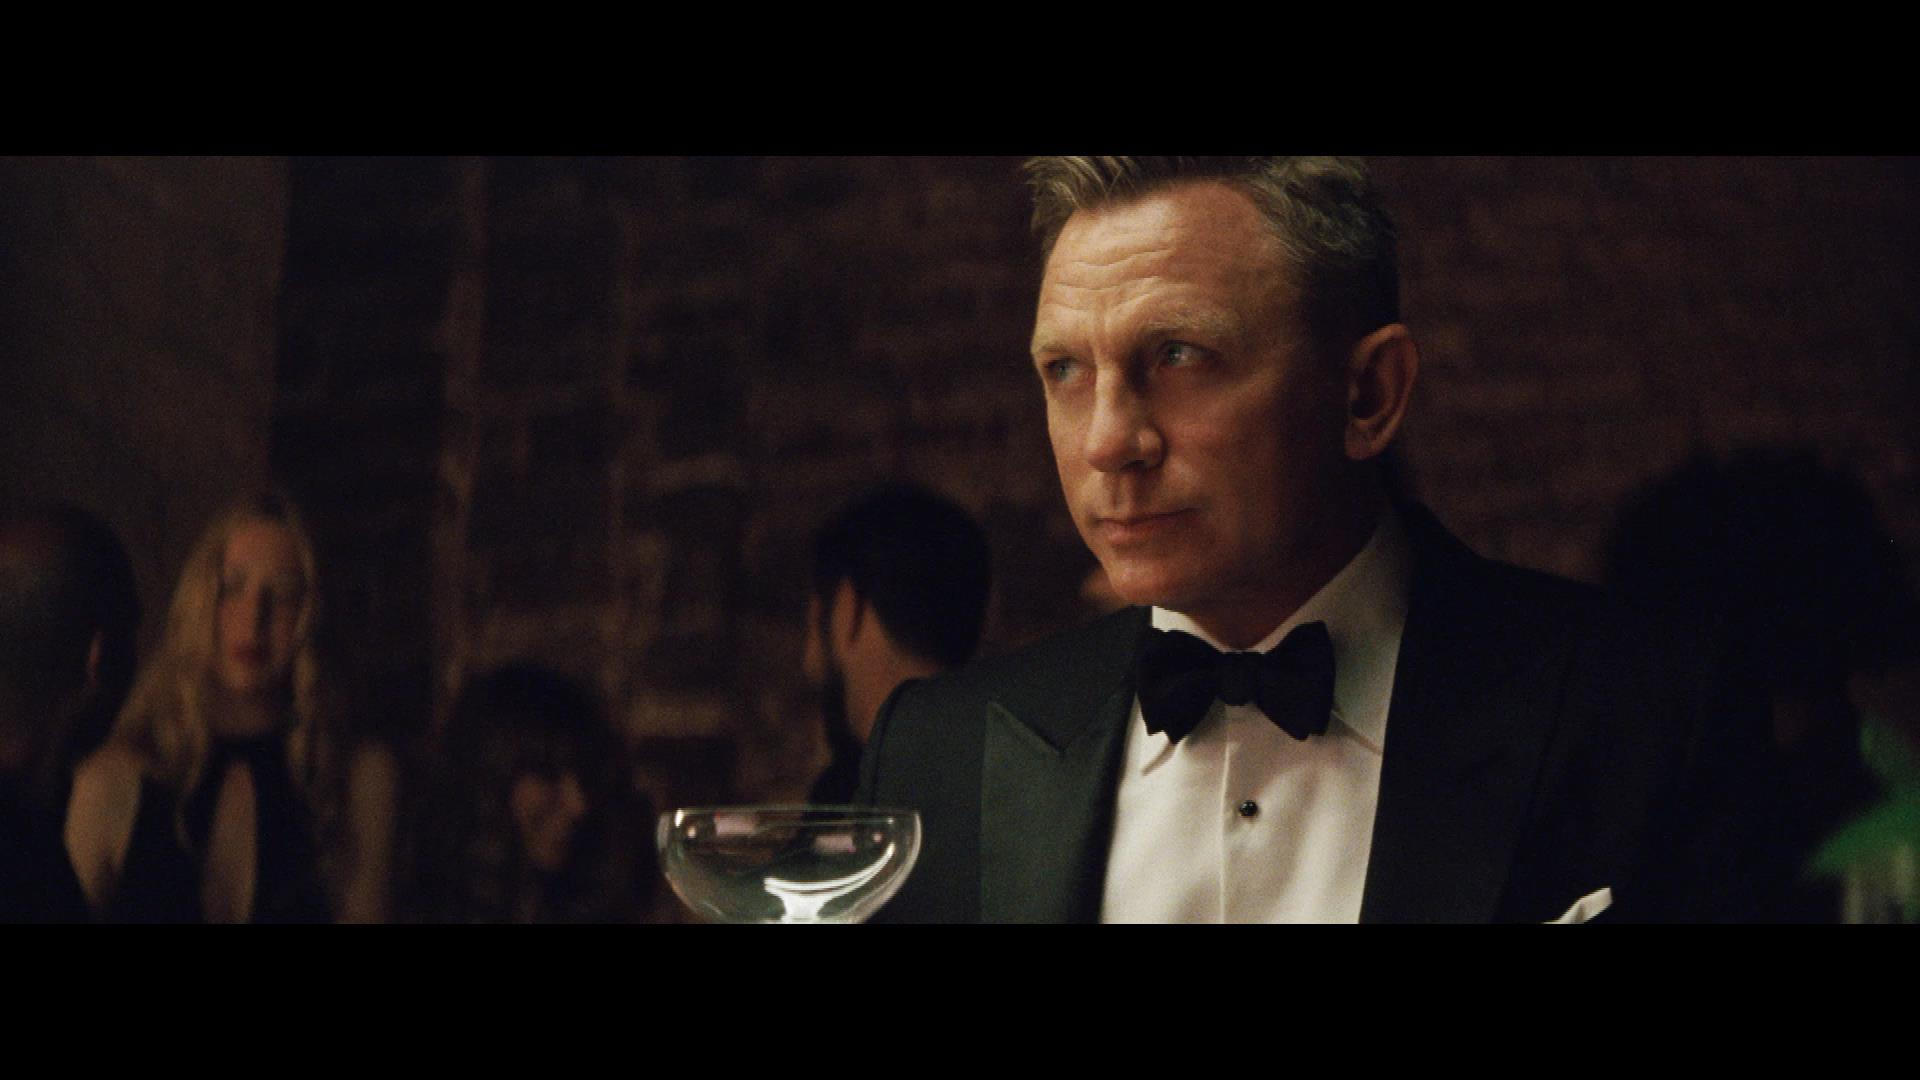 Heineken Daniel Craig vs James Bond